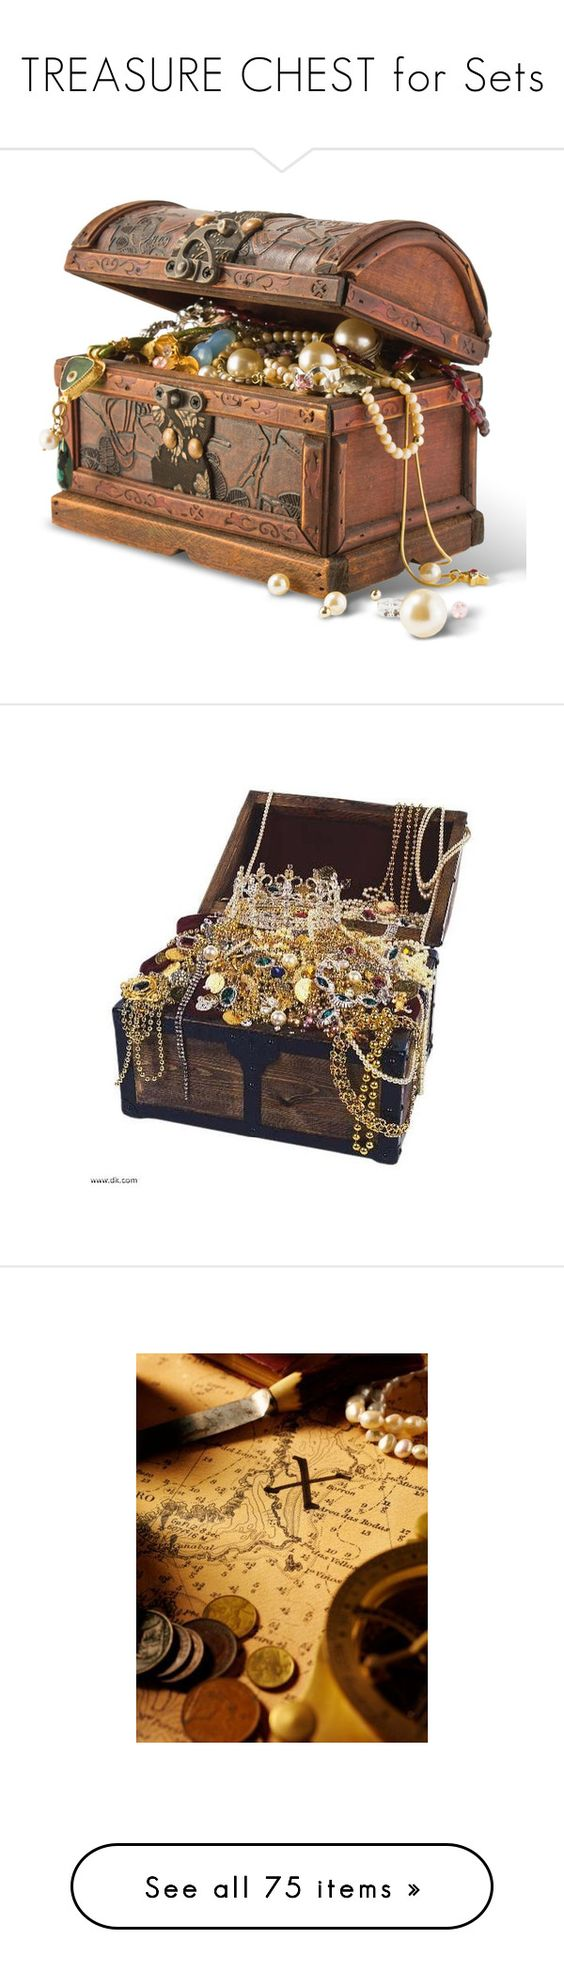 Treasure Chest Decorations Treasure Chest For Sets By Tornpaperco On Polyvore Featuring